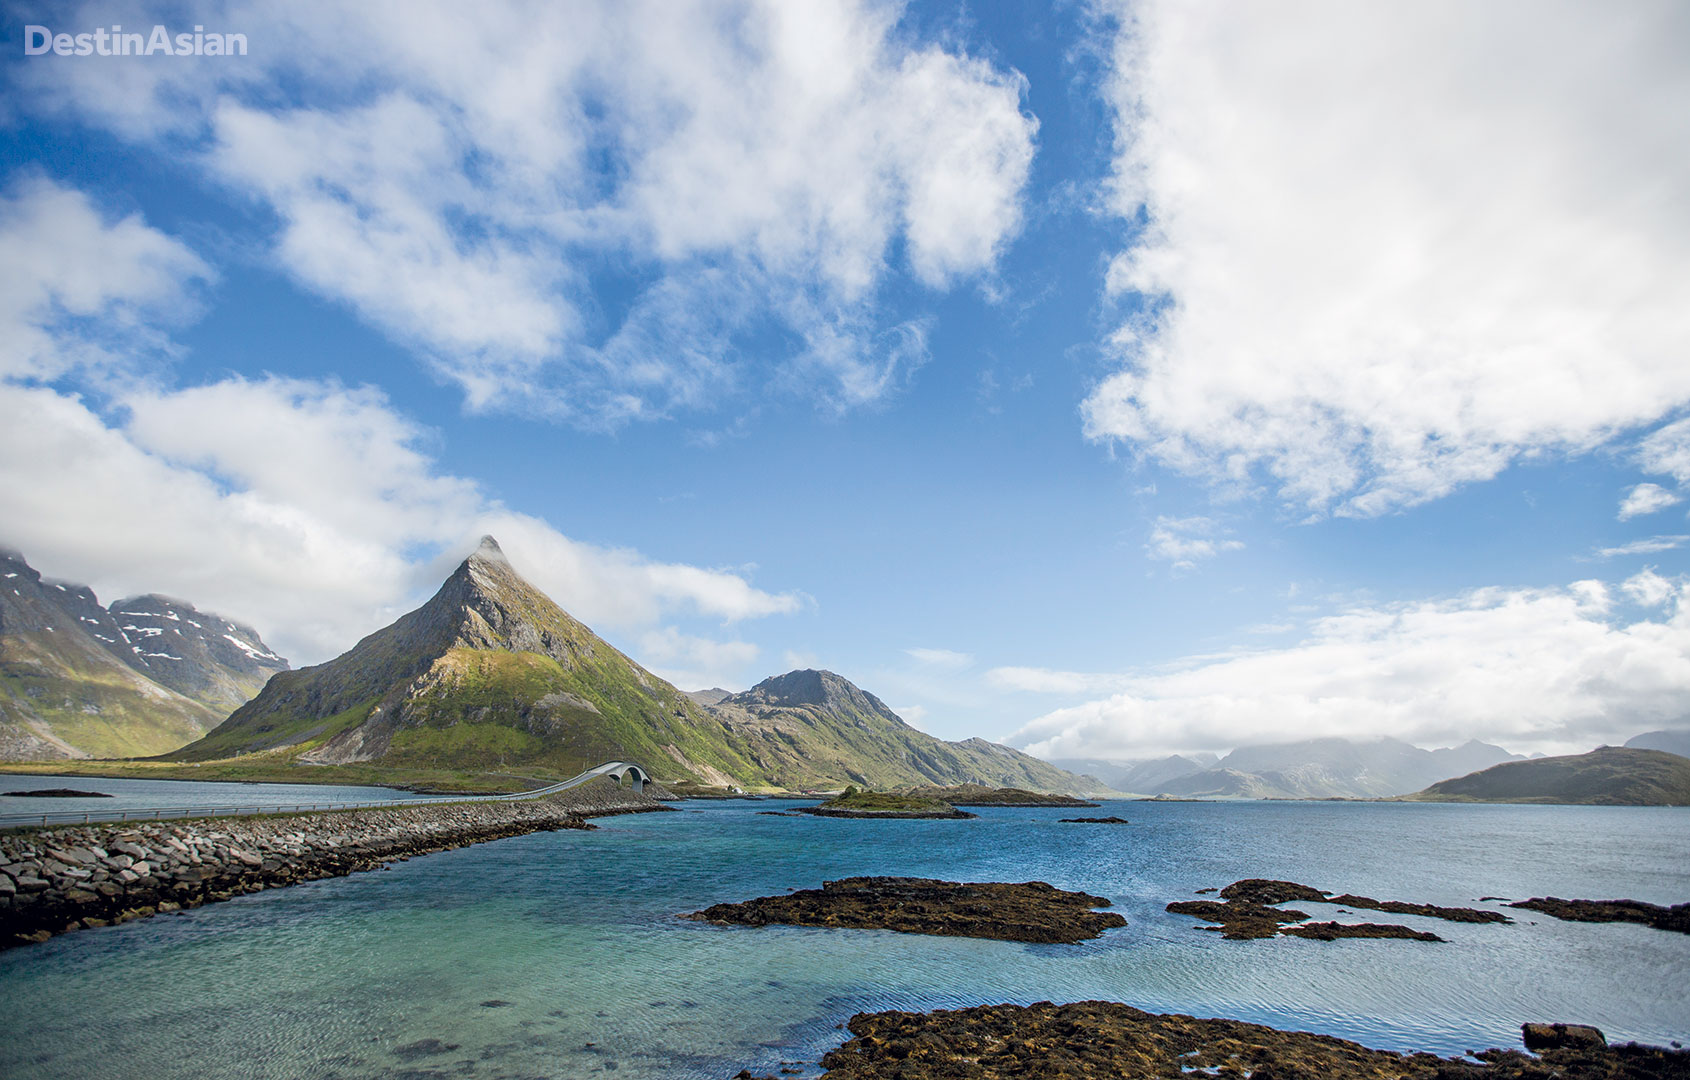 A scenic bridge connects the neighboring Lofoten islands of Flakstadøya and Moskenesøya.